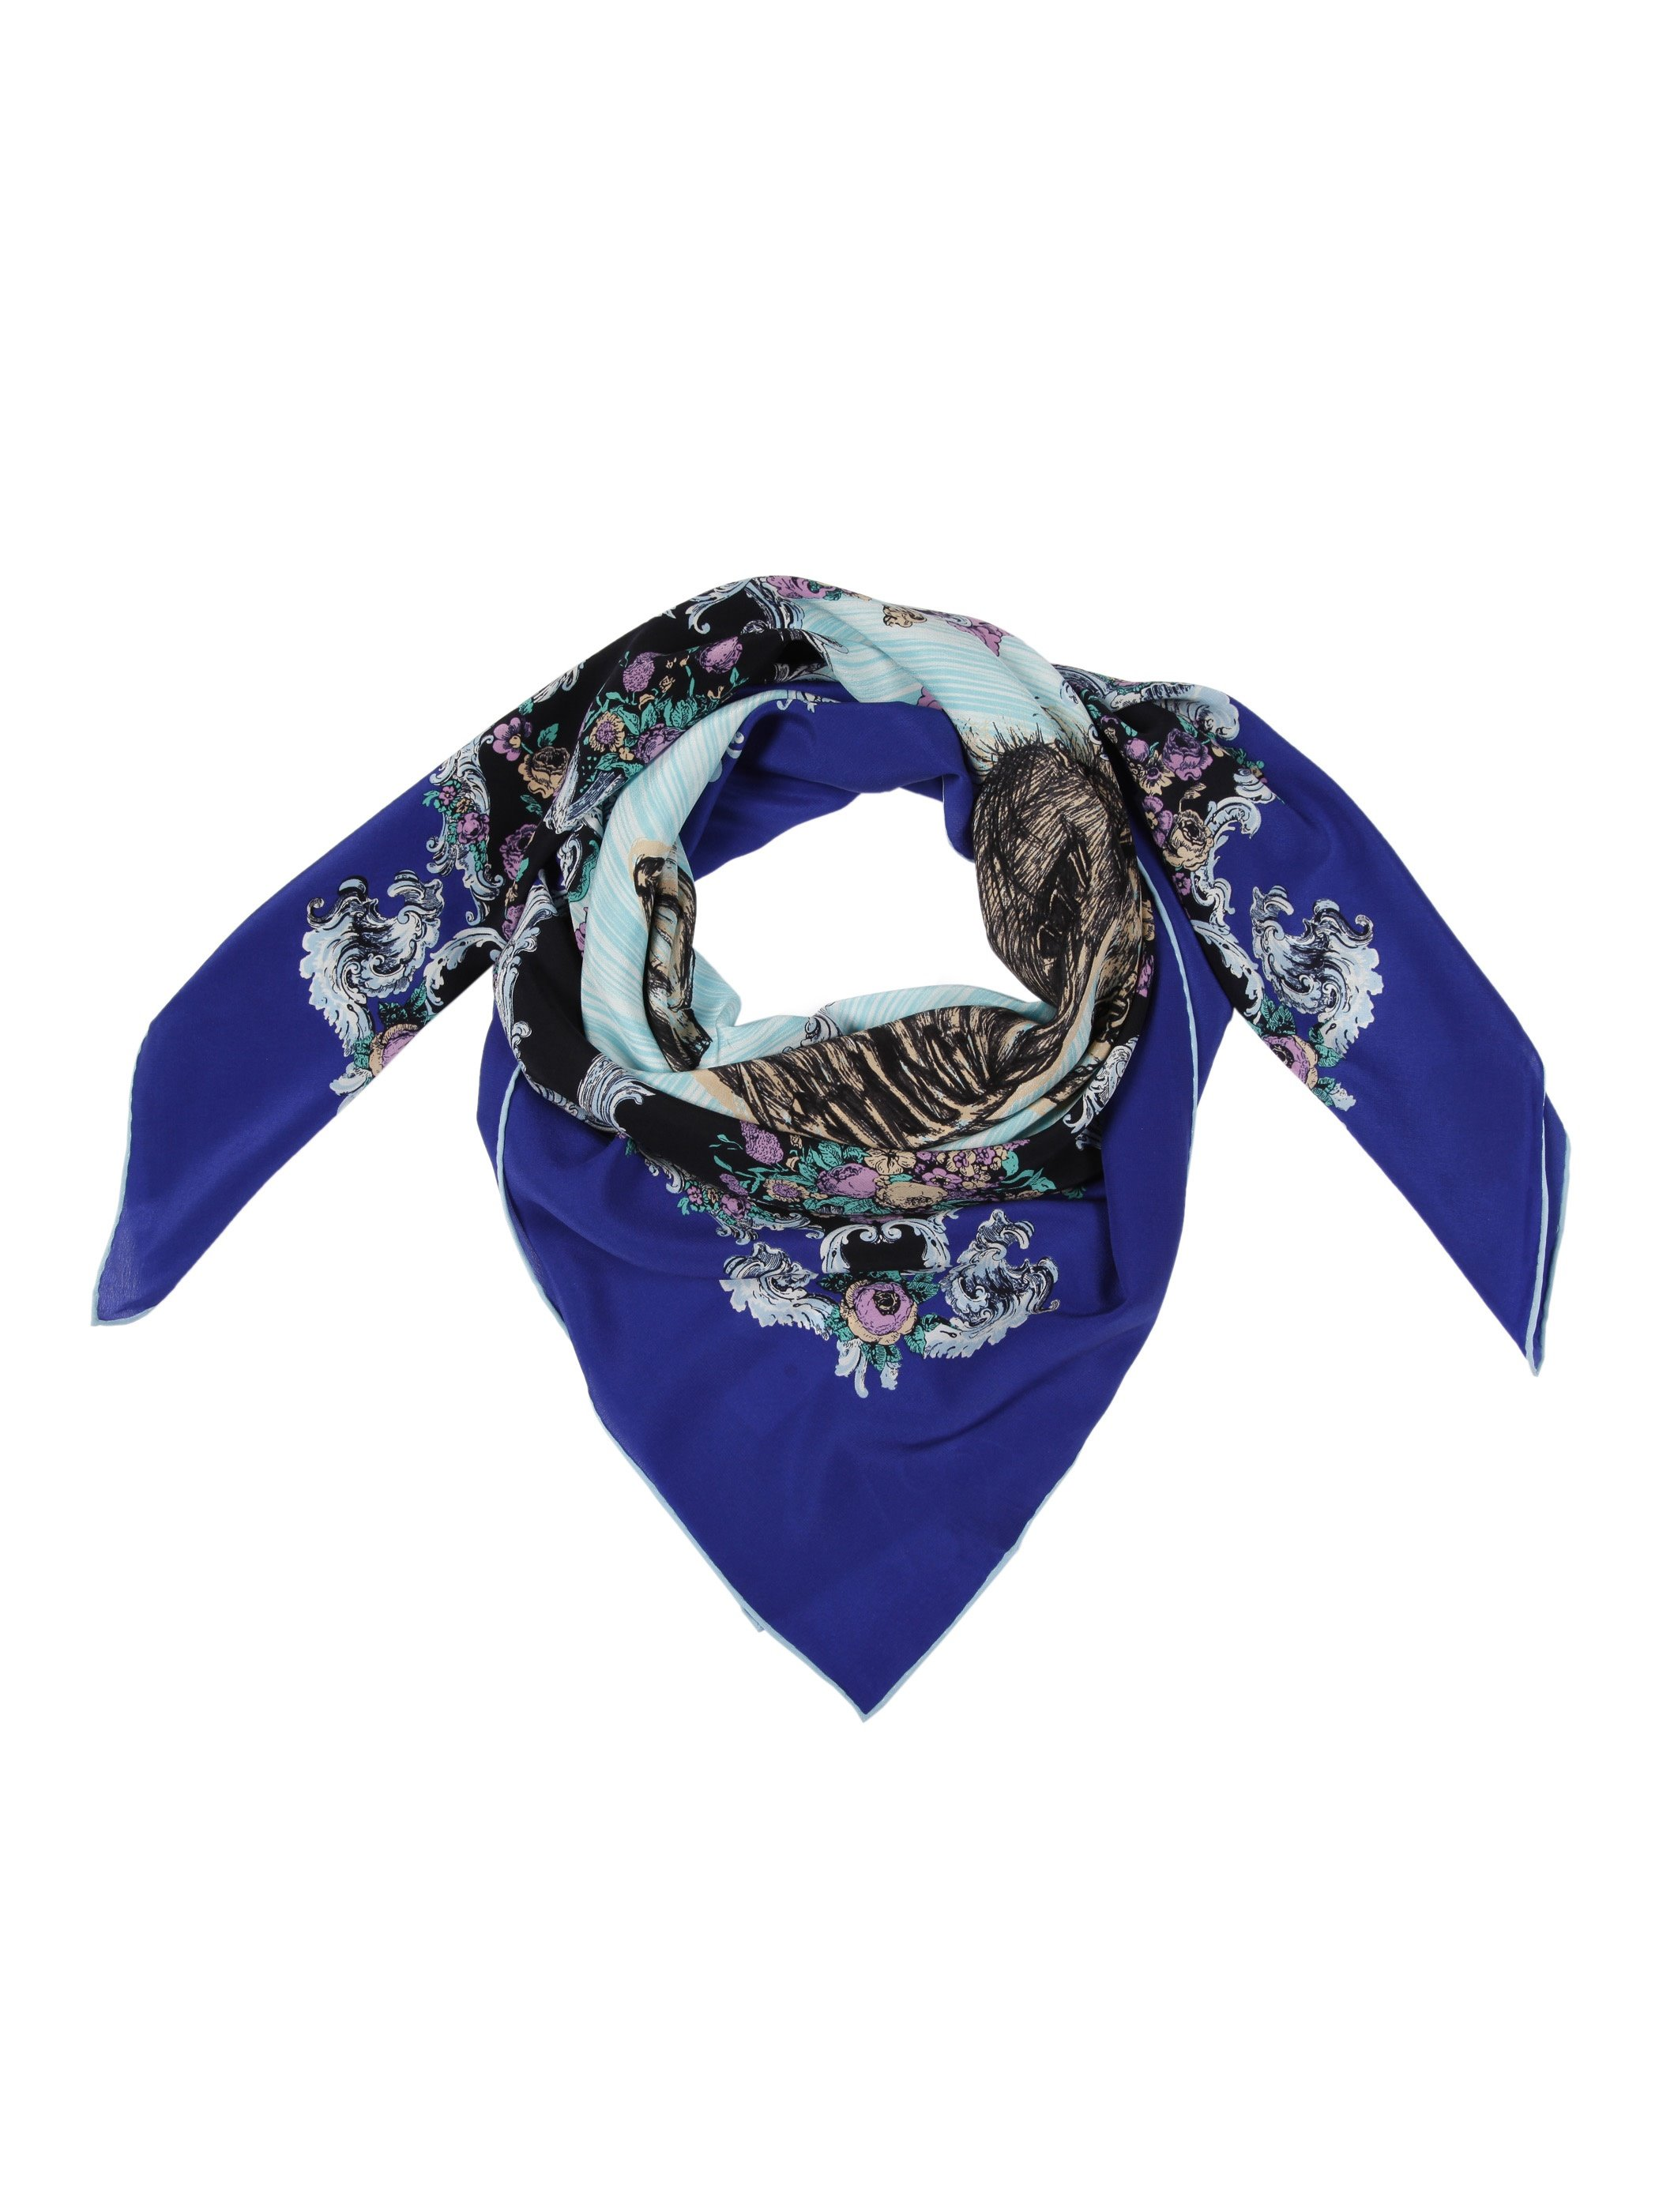 Deluxe Baroque Blue Horse Patterns Mulberry Silk Square Scarf